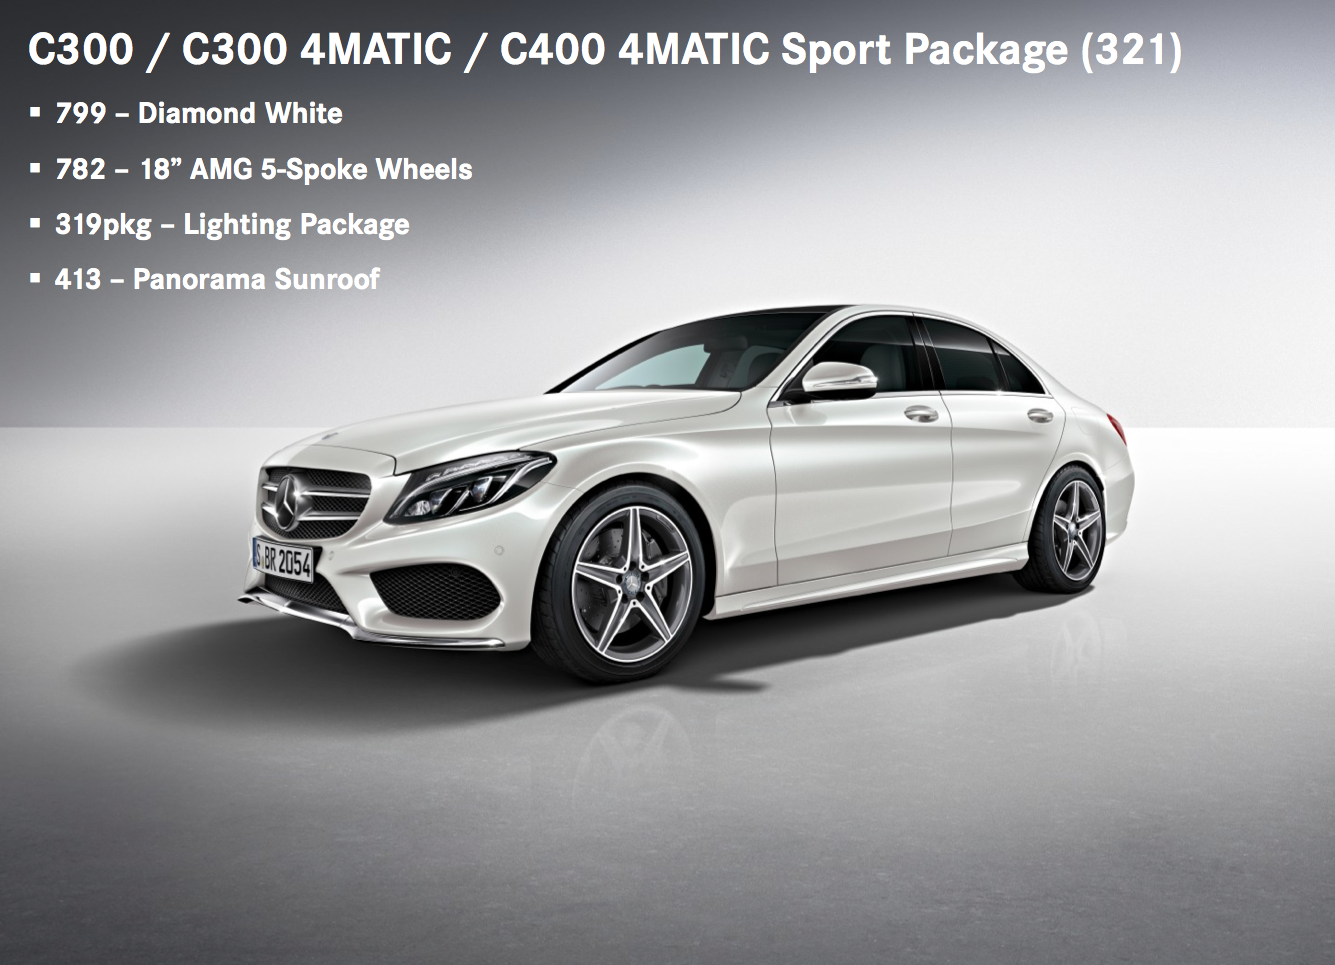 2015 mercedes c class order guide revealed benzinsider for Mercedes benz 2015 c class price